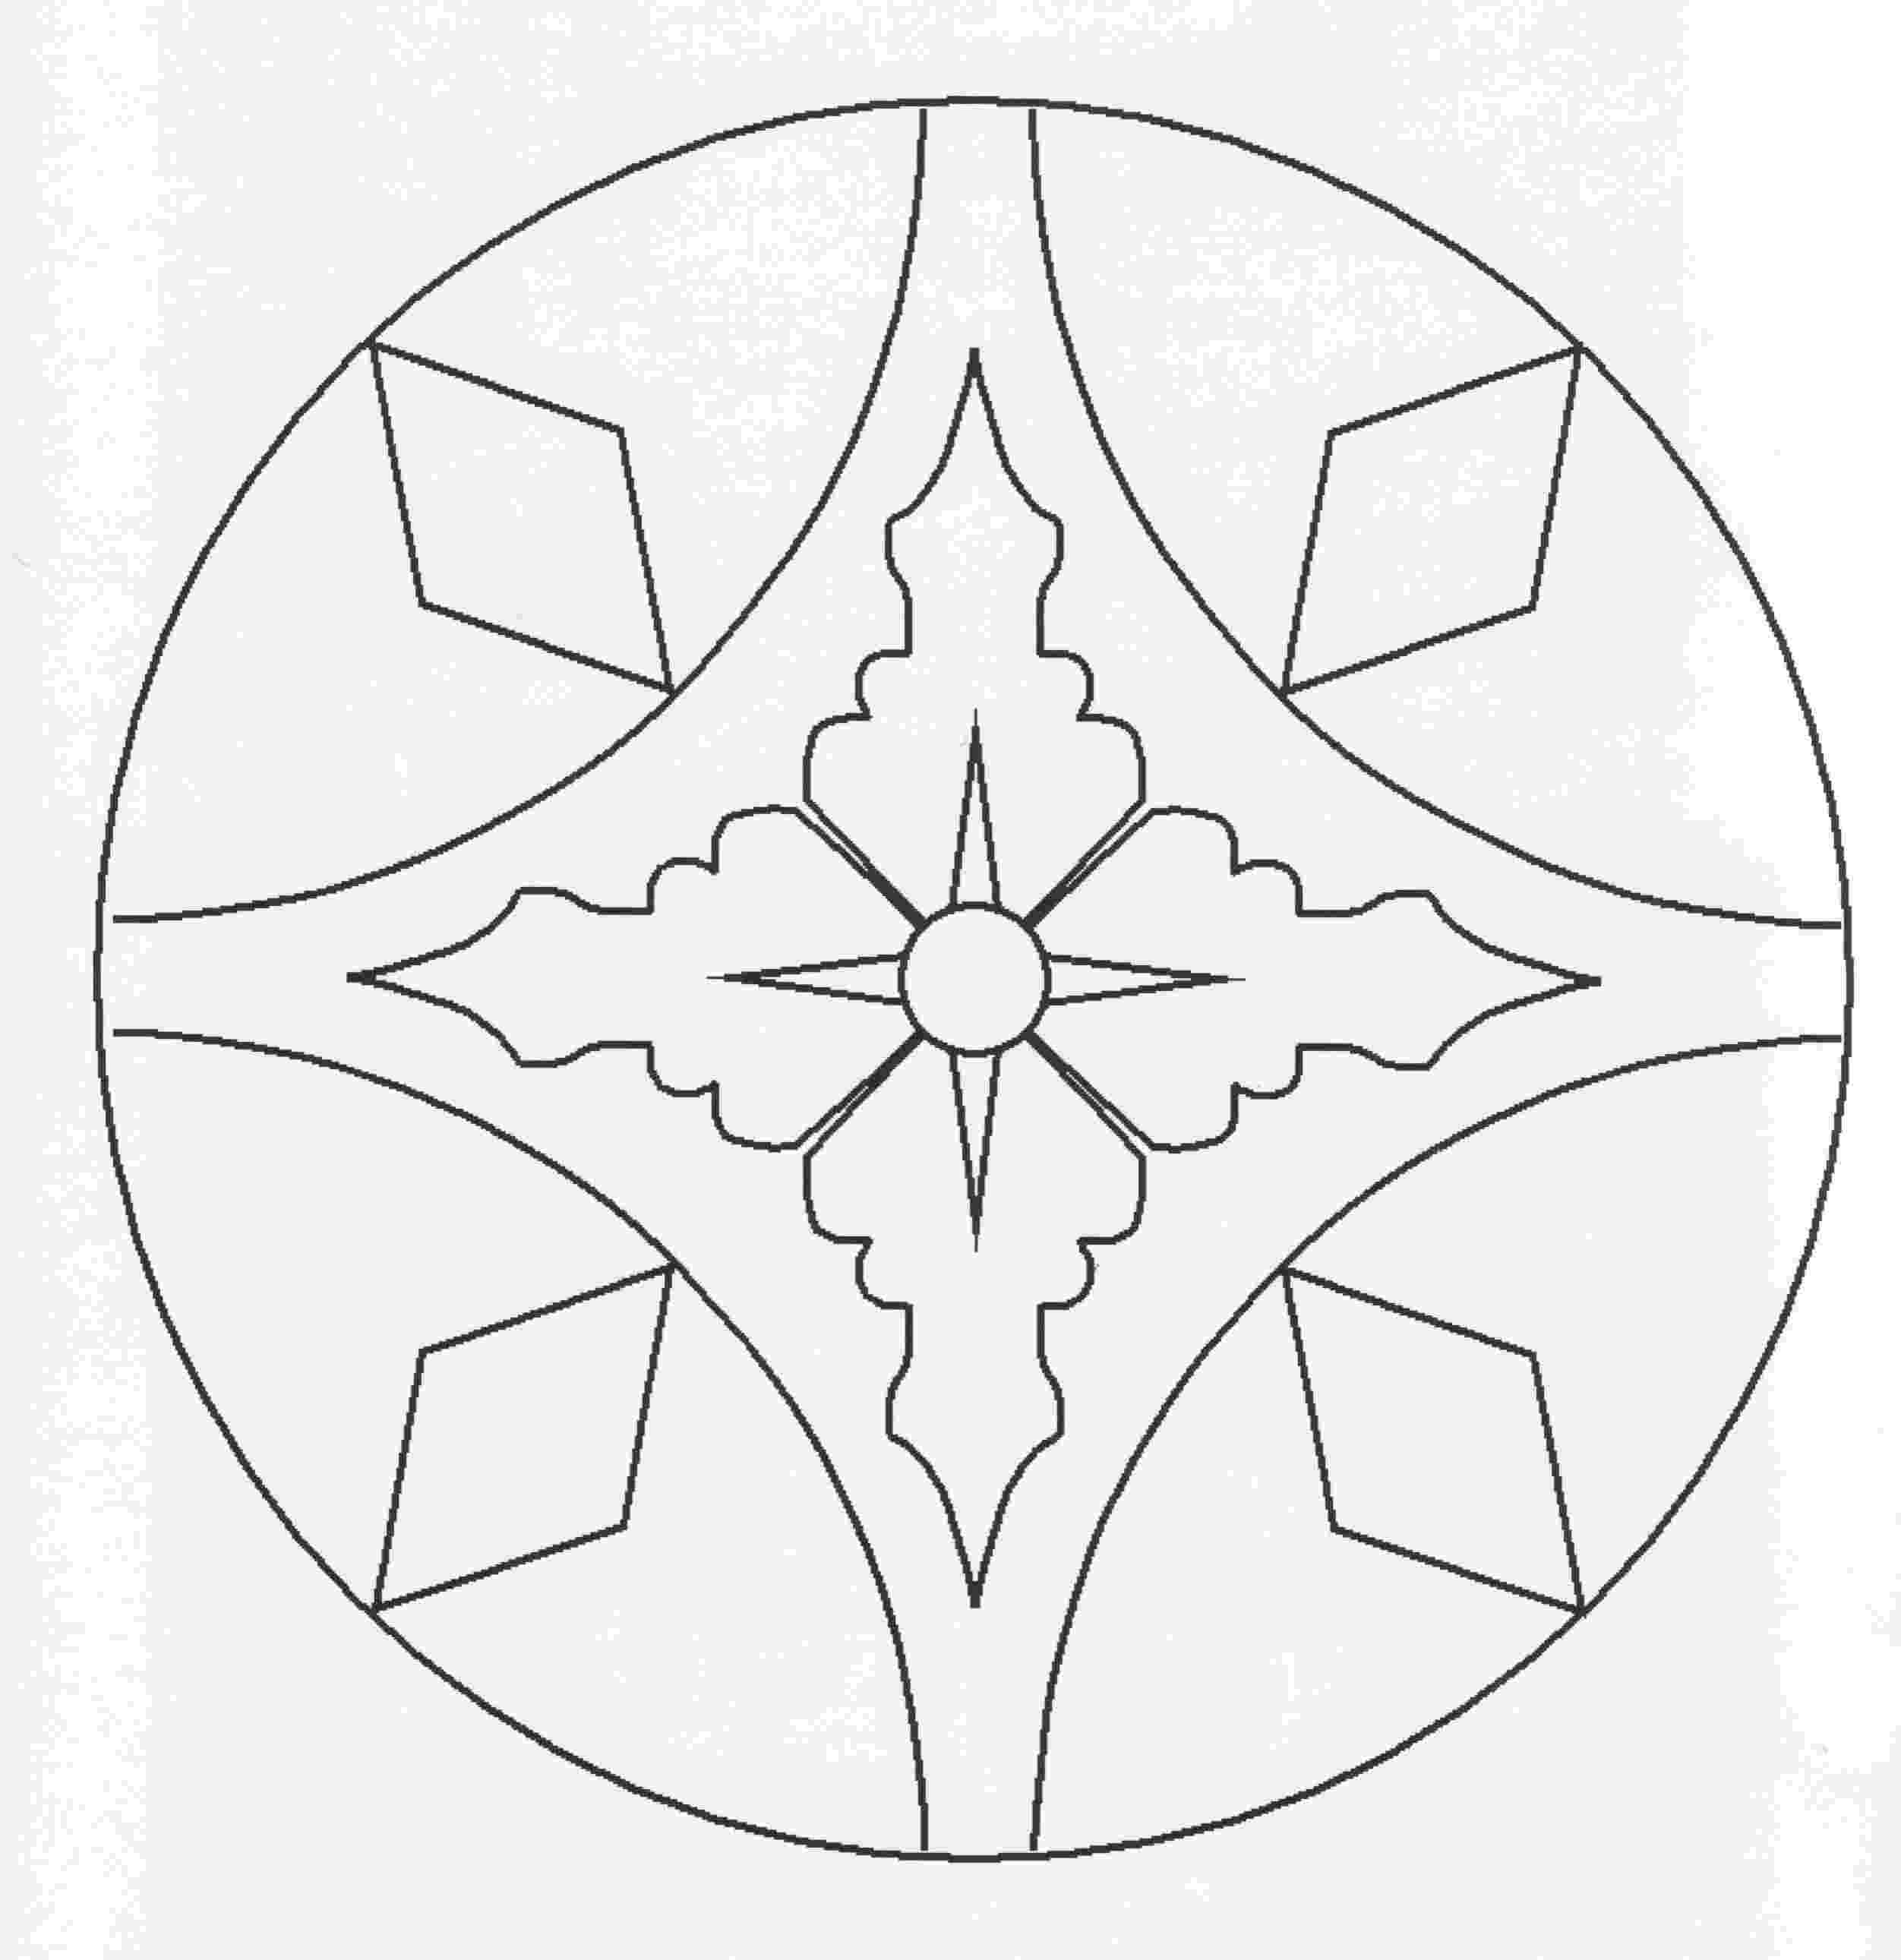 printable colouring patterns free printable rangoli coloring pages for kids printable colouring patterns